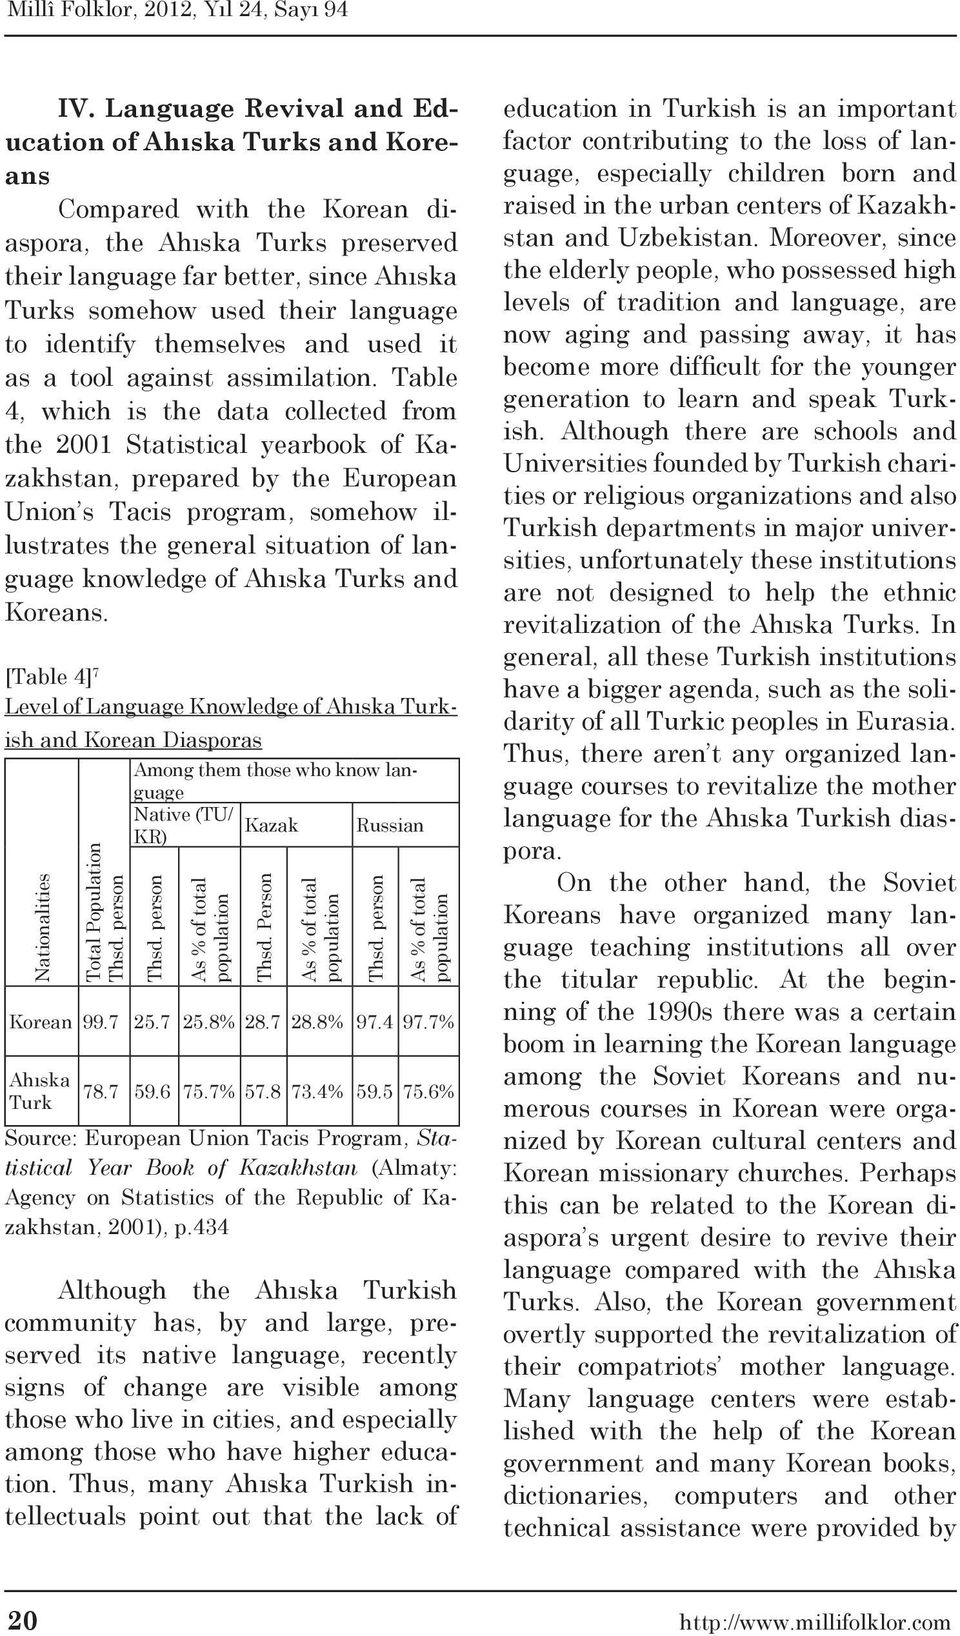 Table 4, which is the data collected from the 2001 Statistical yearbook of Kazakhstan, prepared by the European Union s Tacis program, somehow illustrates the general situation of language knowledge